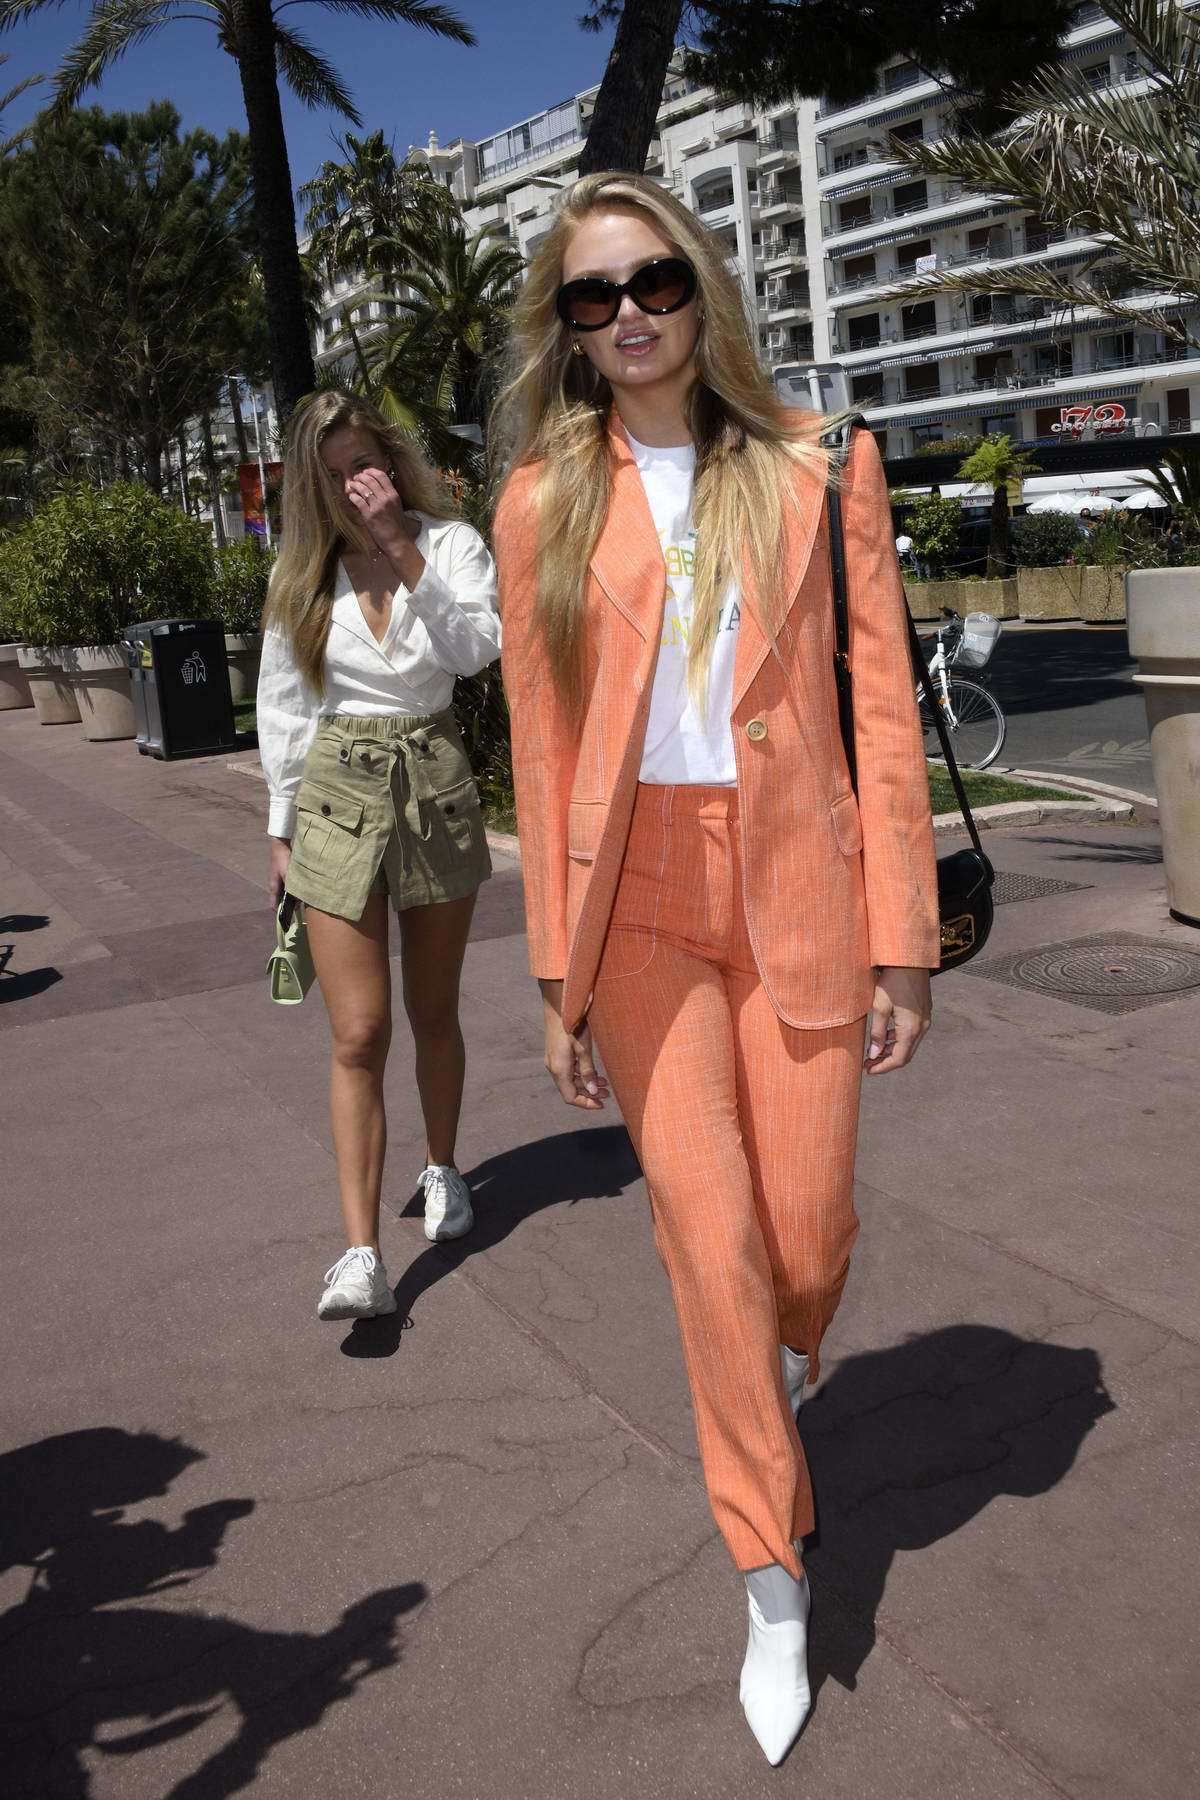 jacket romee strijd model off-duty spring outfits suit pants top blazer orange